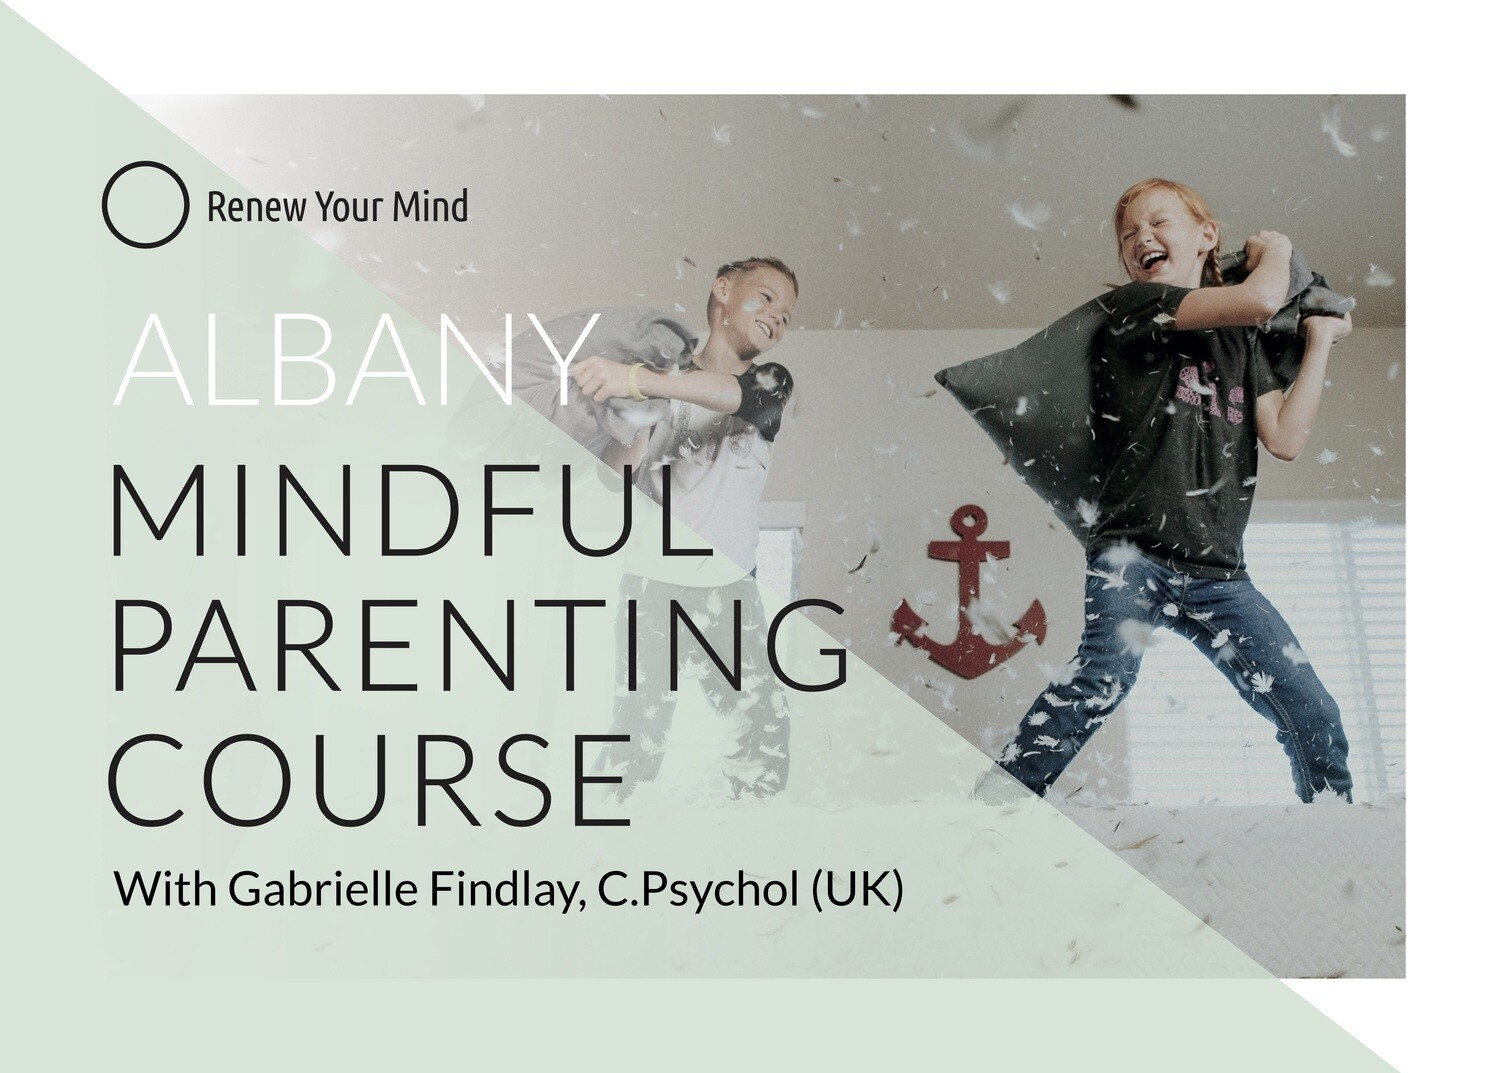 Albany Mindful Parenting course: 6 session course starting 13 May '21